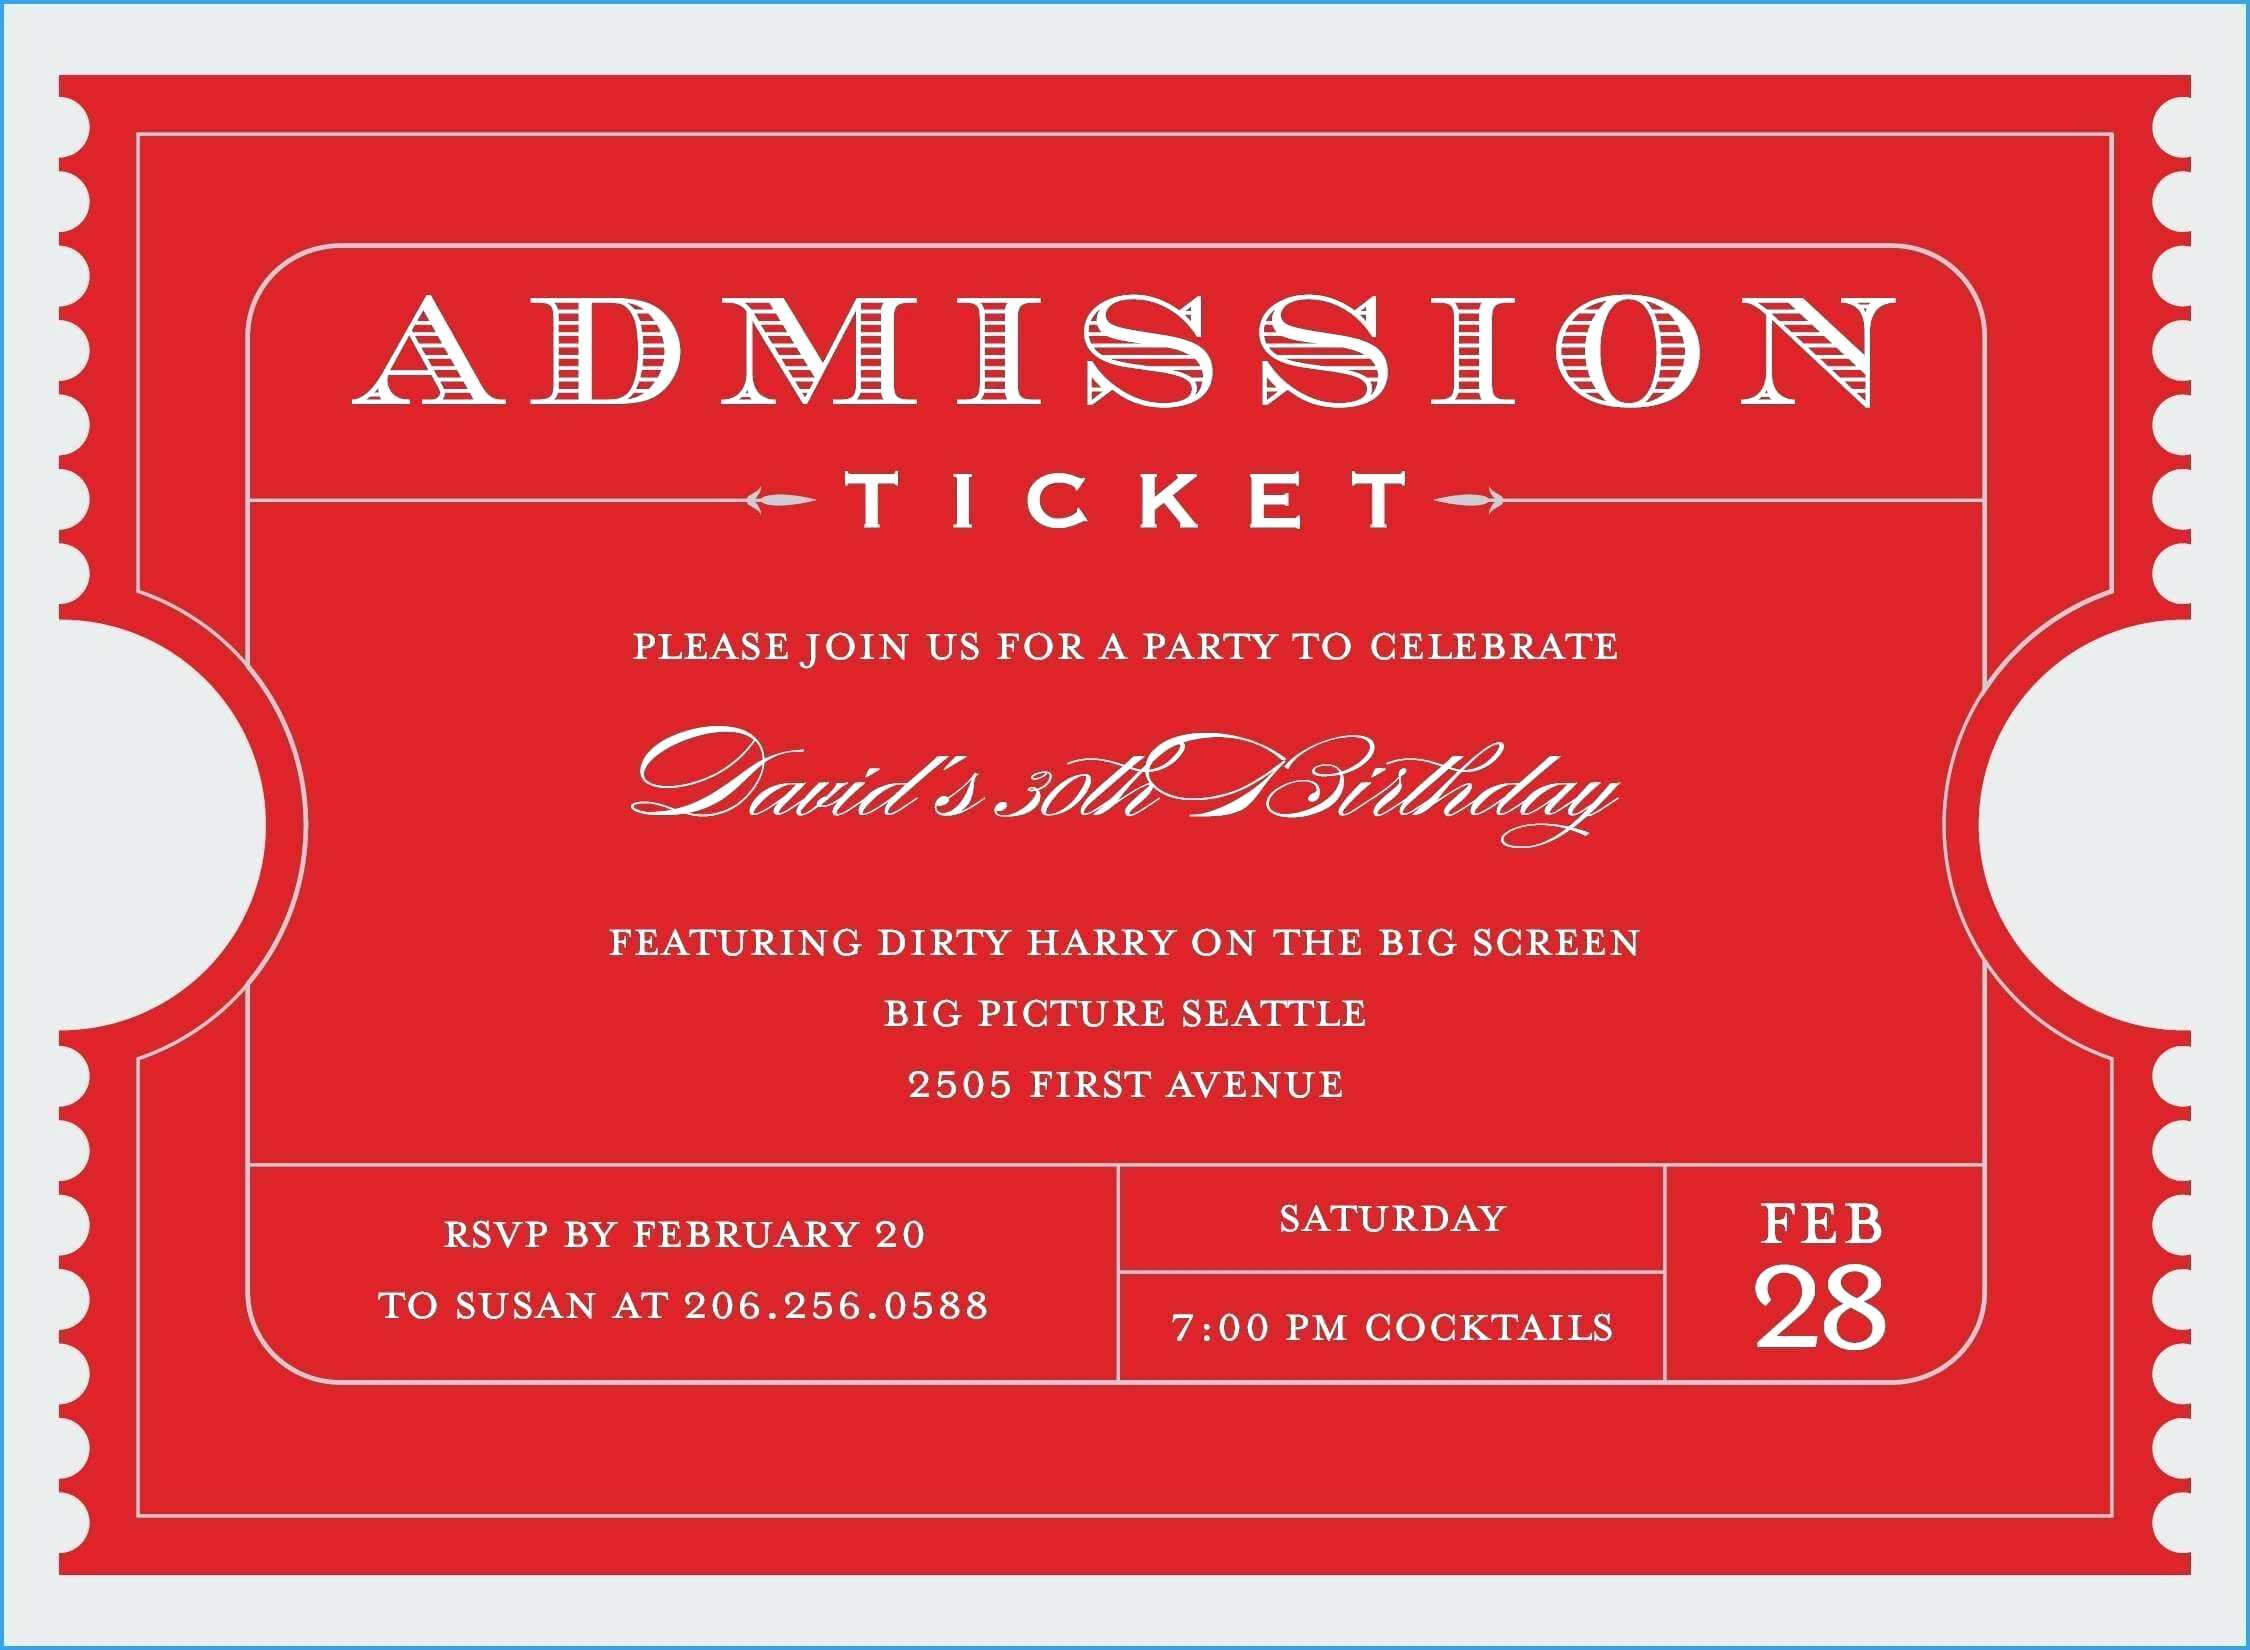 Help Desk Ticket Template Word – Wovensheet.co pertaining to Blank Admission Ticket Template